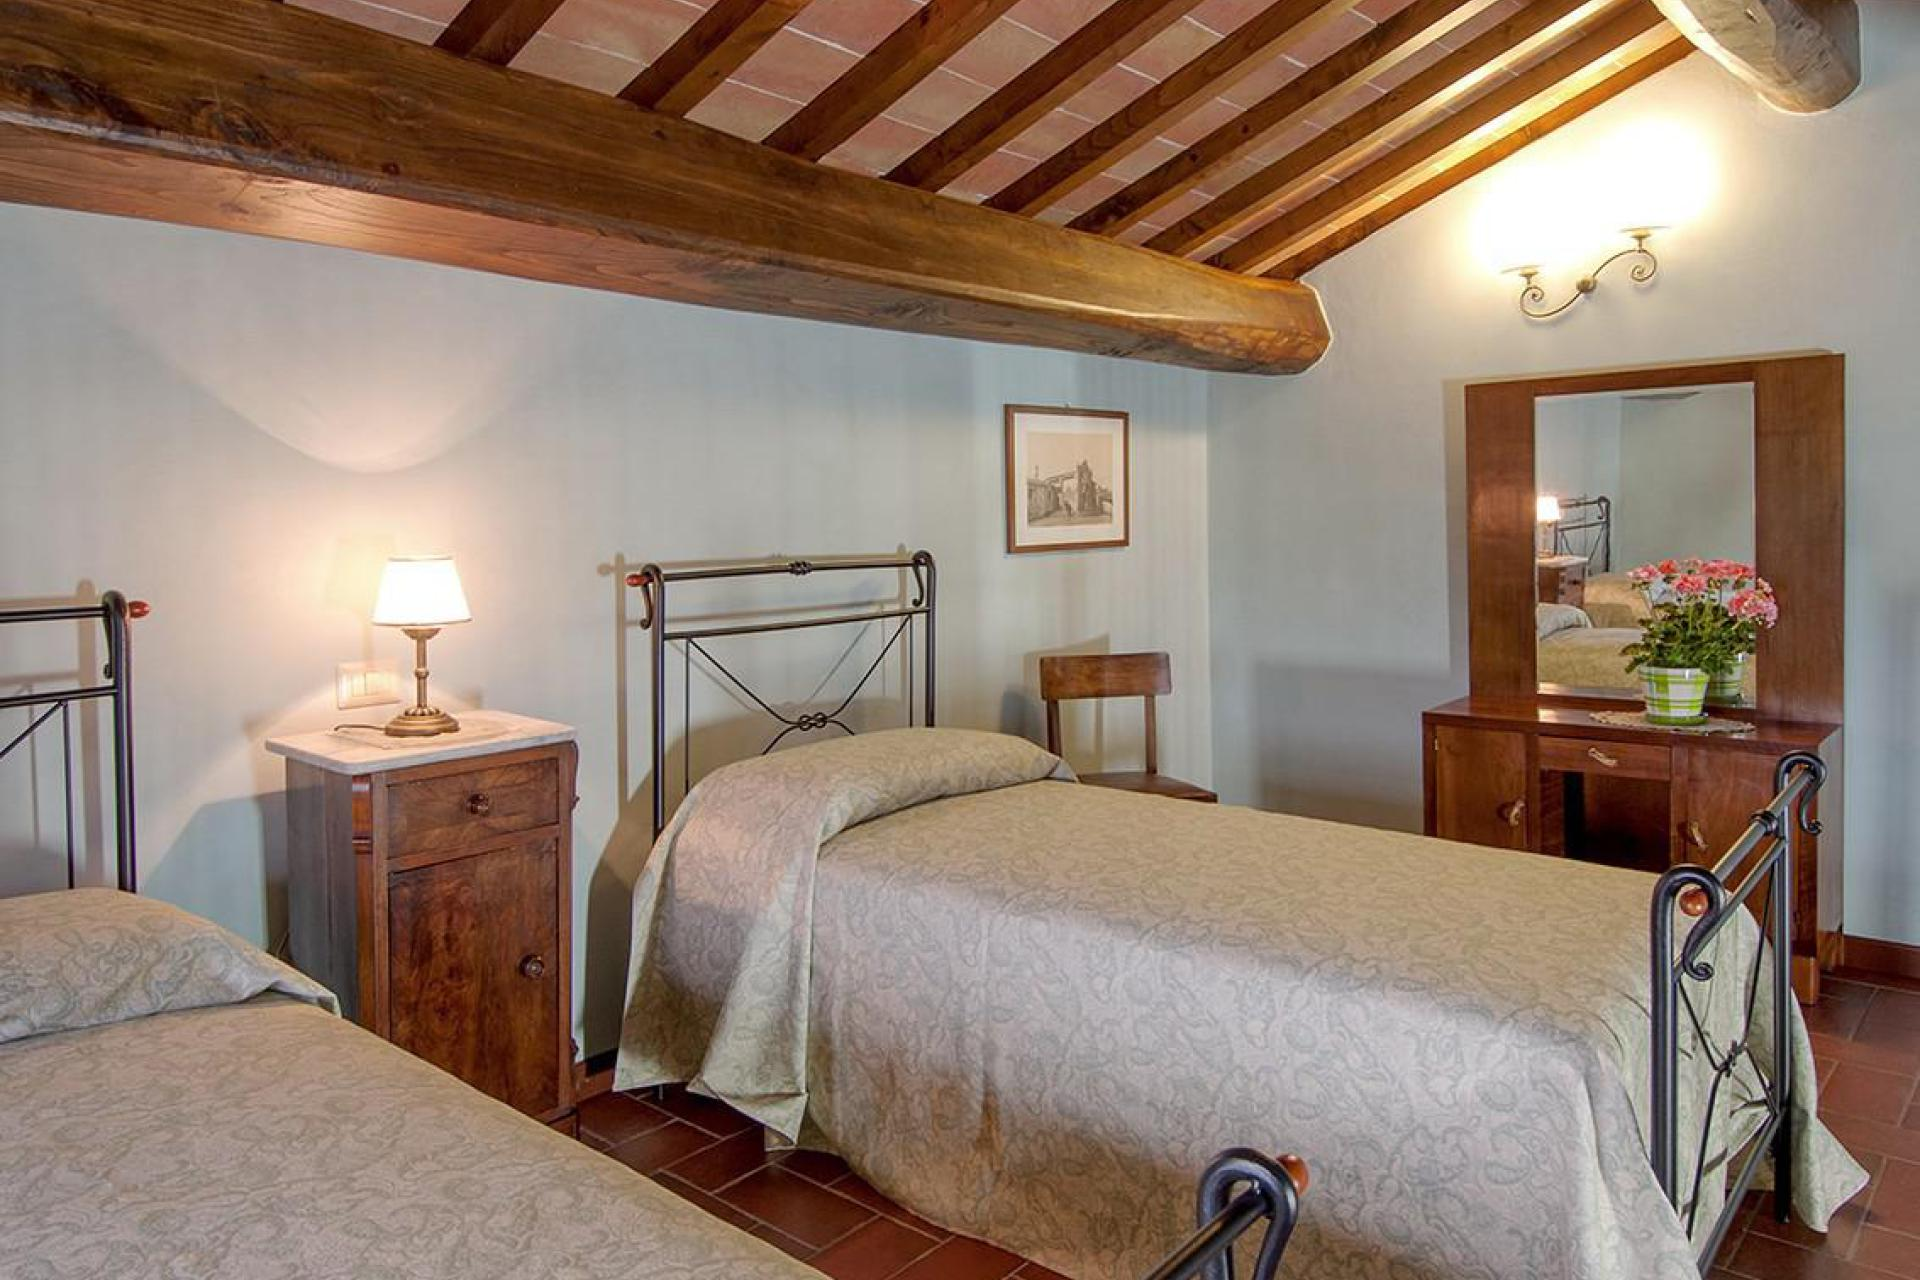 Agriturismo Marche Agriturismo le Marche, welcoming and child friendly